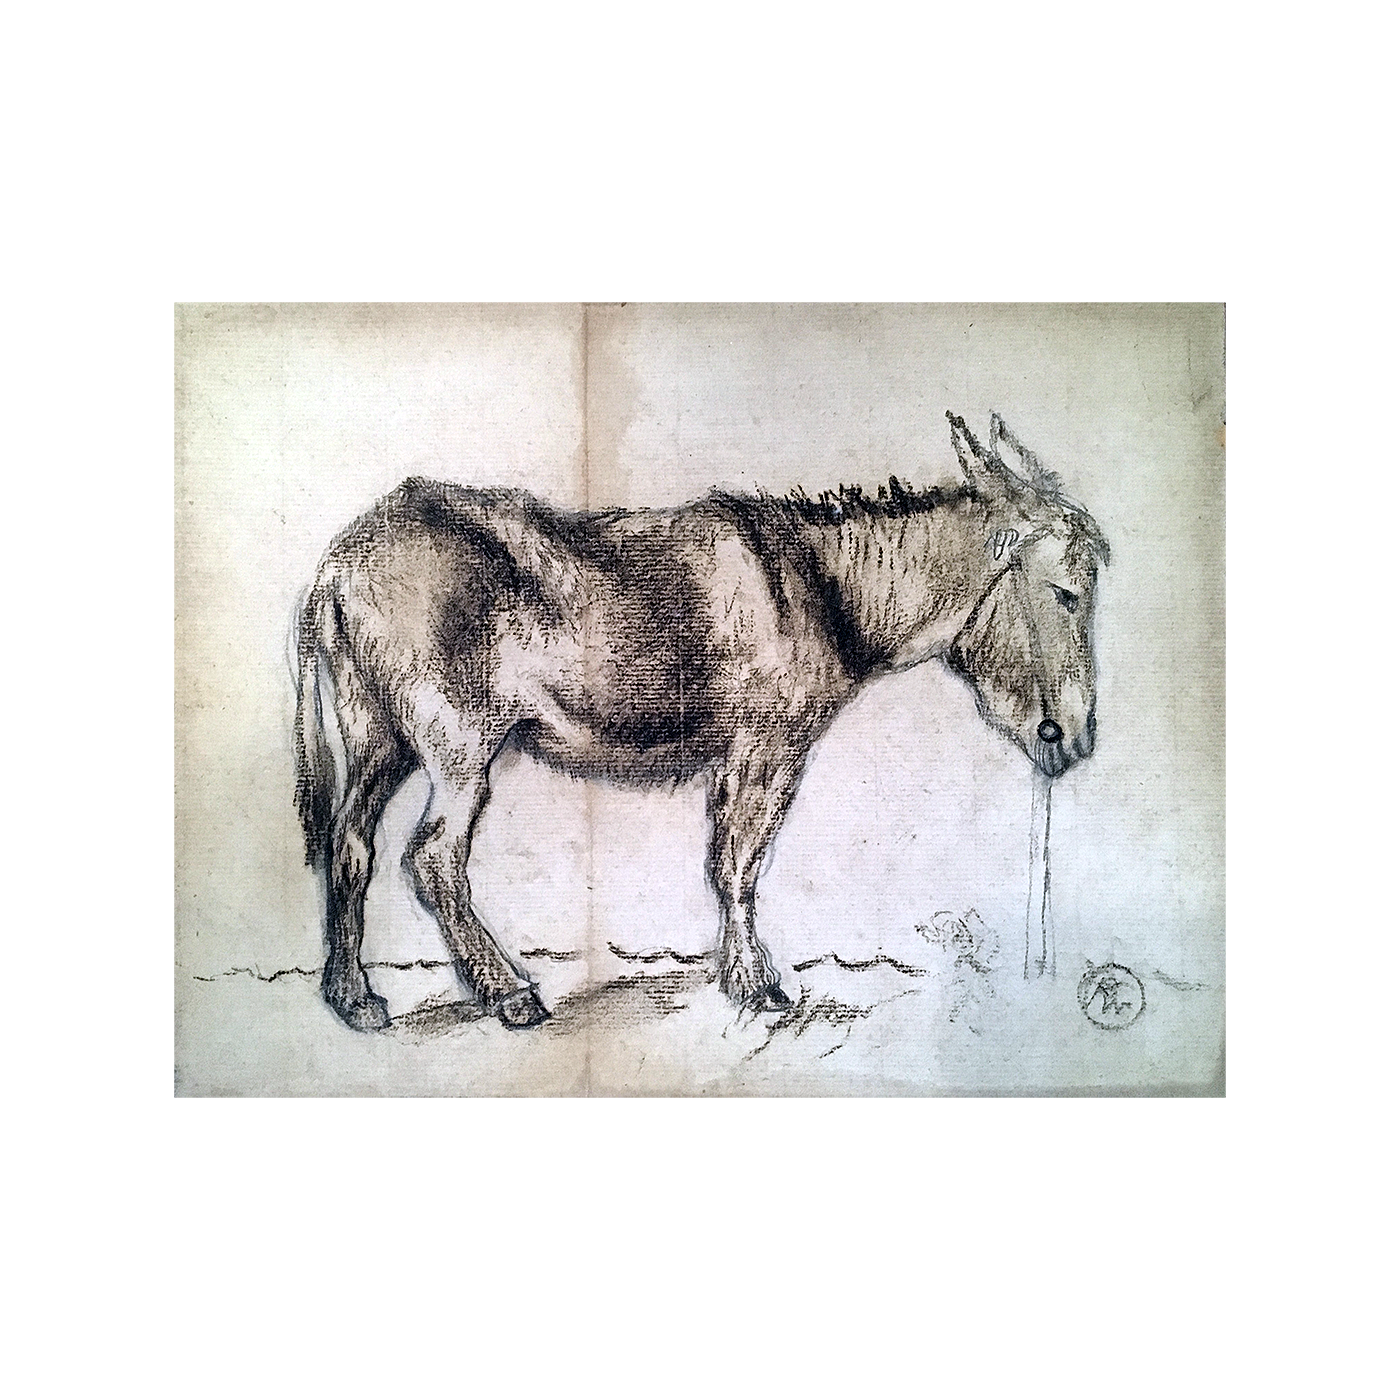 American drawing 20th century. Or south the burro